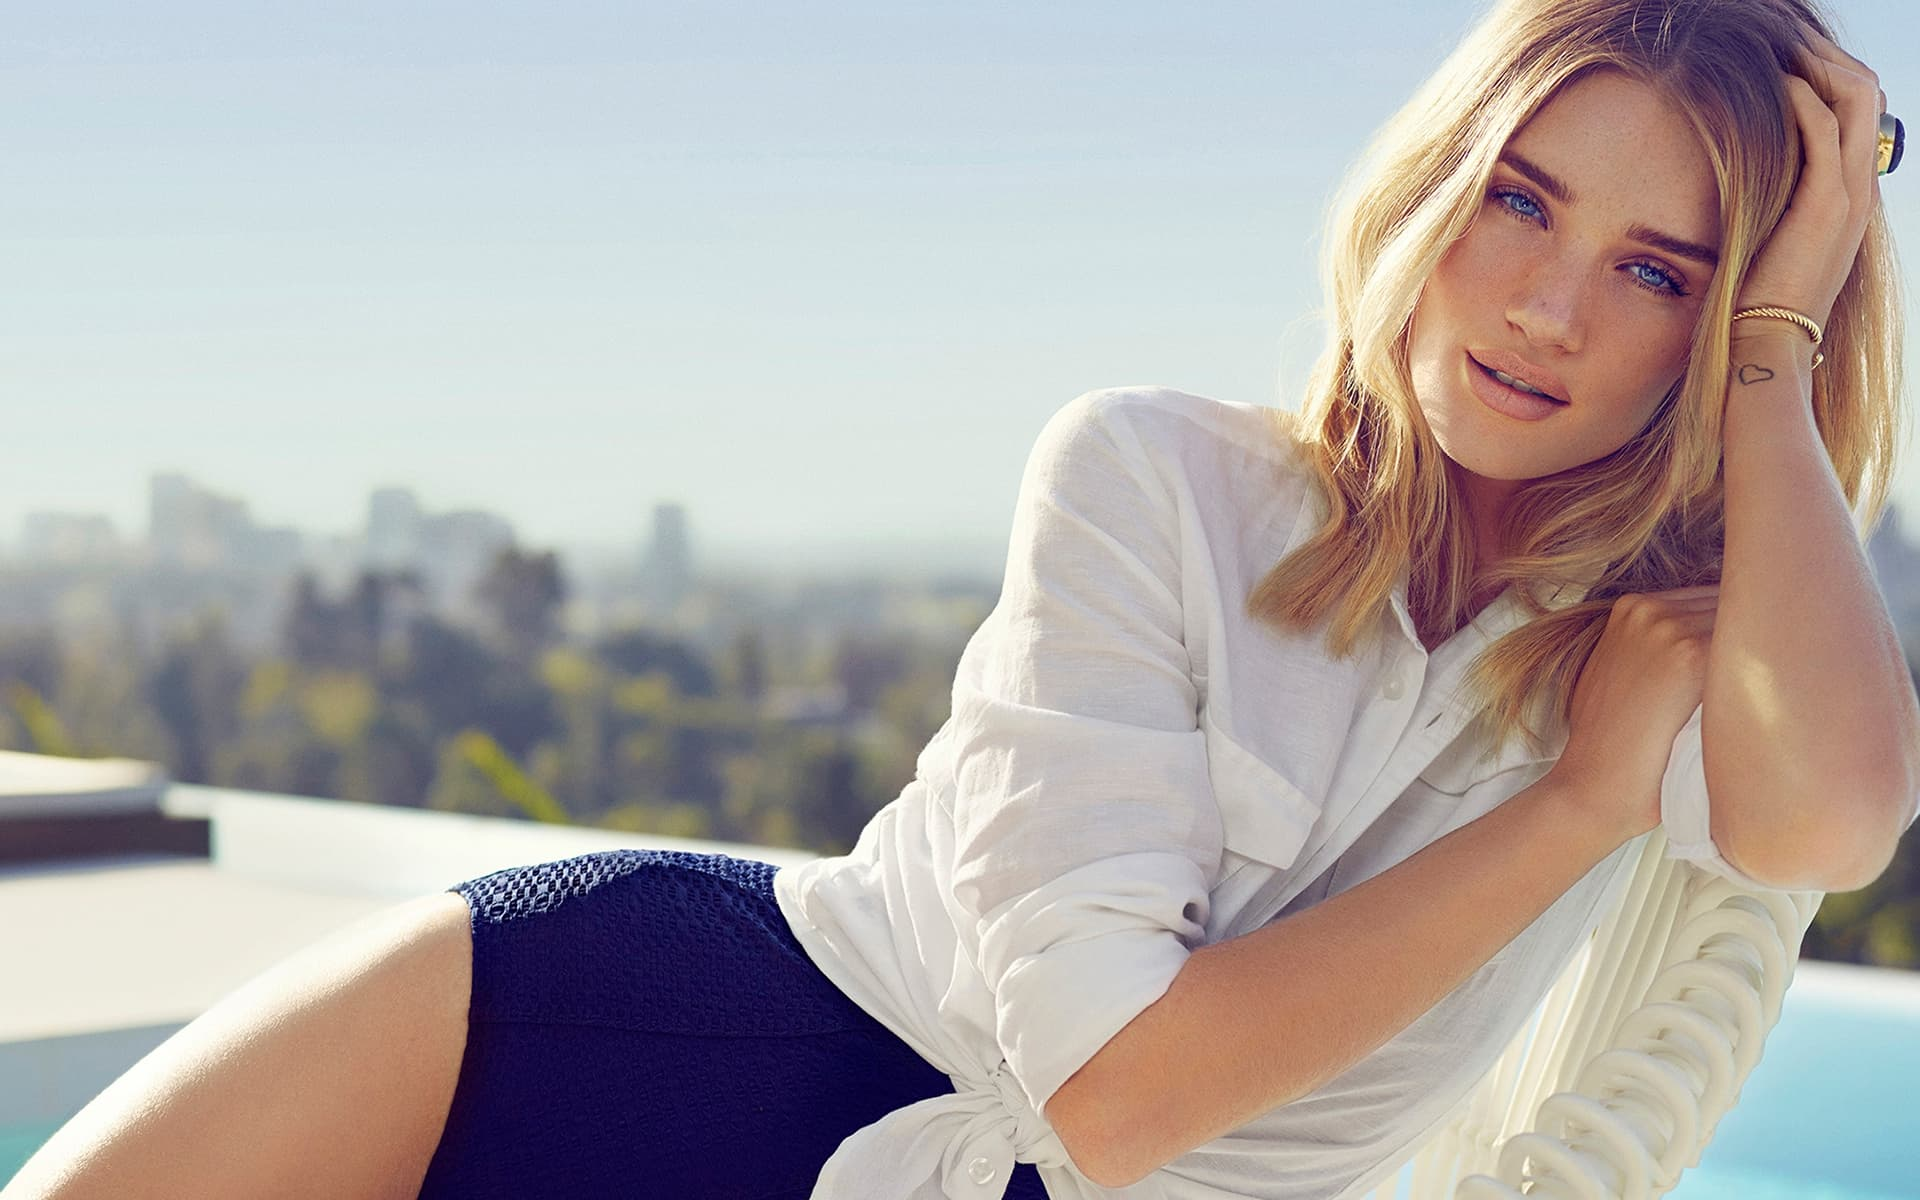 Cool For Girls Wallpapers 24 Rosie Huntington Whiteley Wallpapers High Quality Download